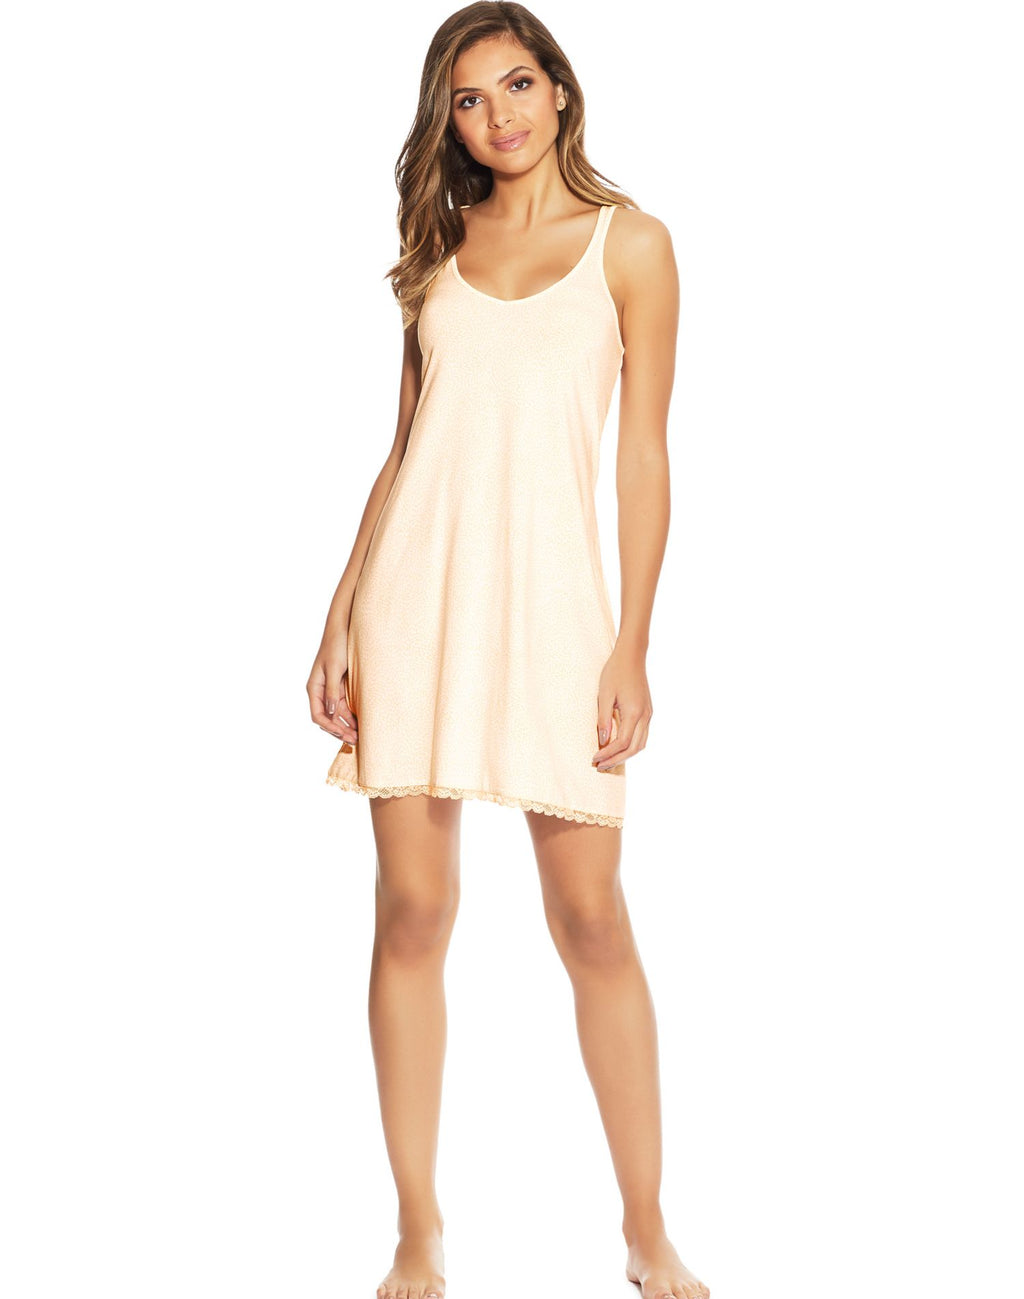 Maidenform Womens Lace Trim Lounge Chemise